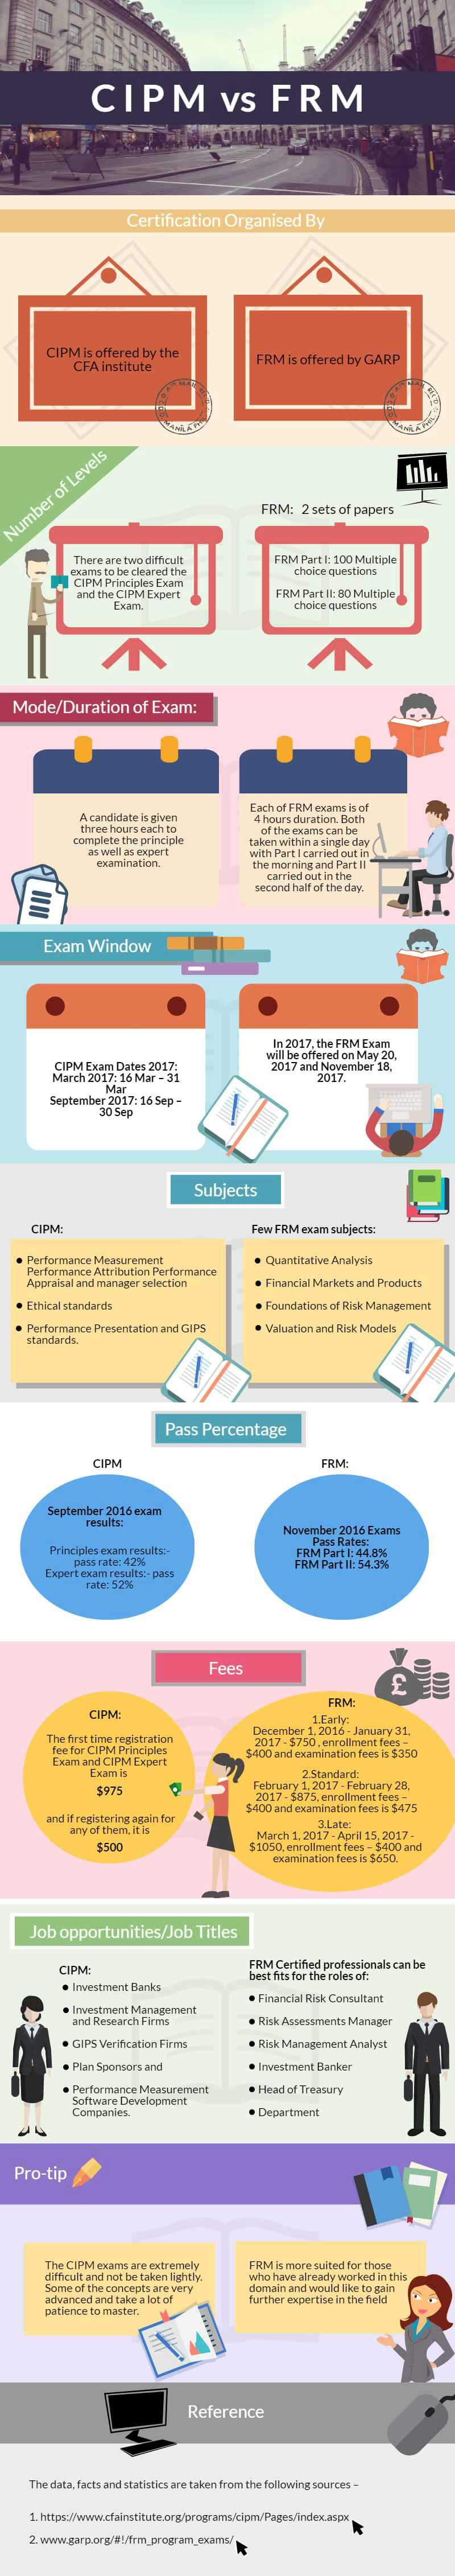 Cipm Vs Frm Which To Choose For A Good Professional Future